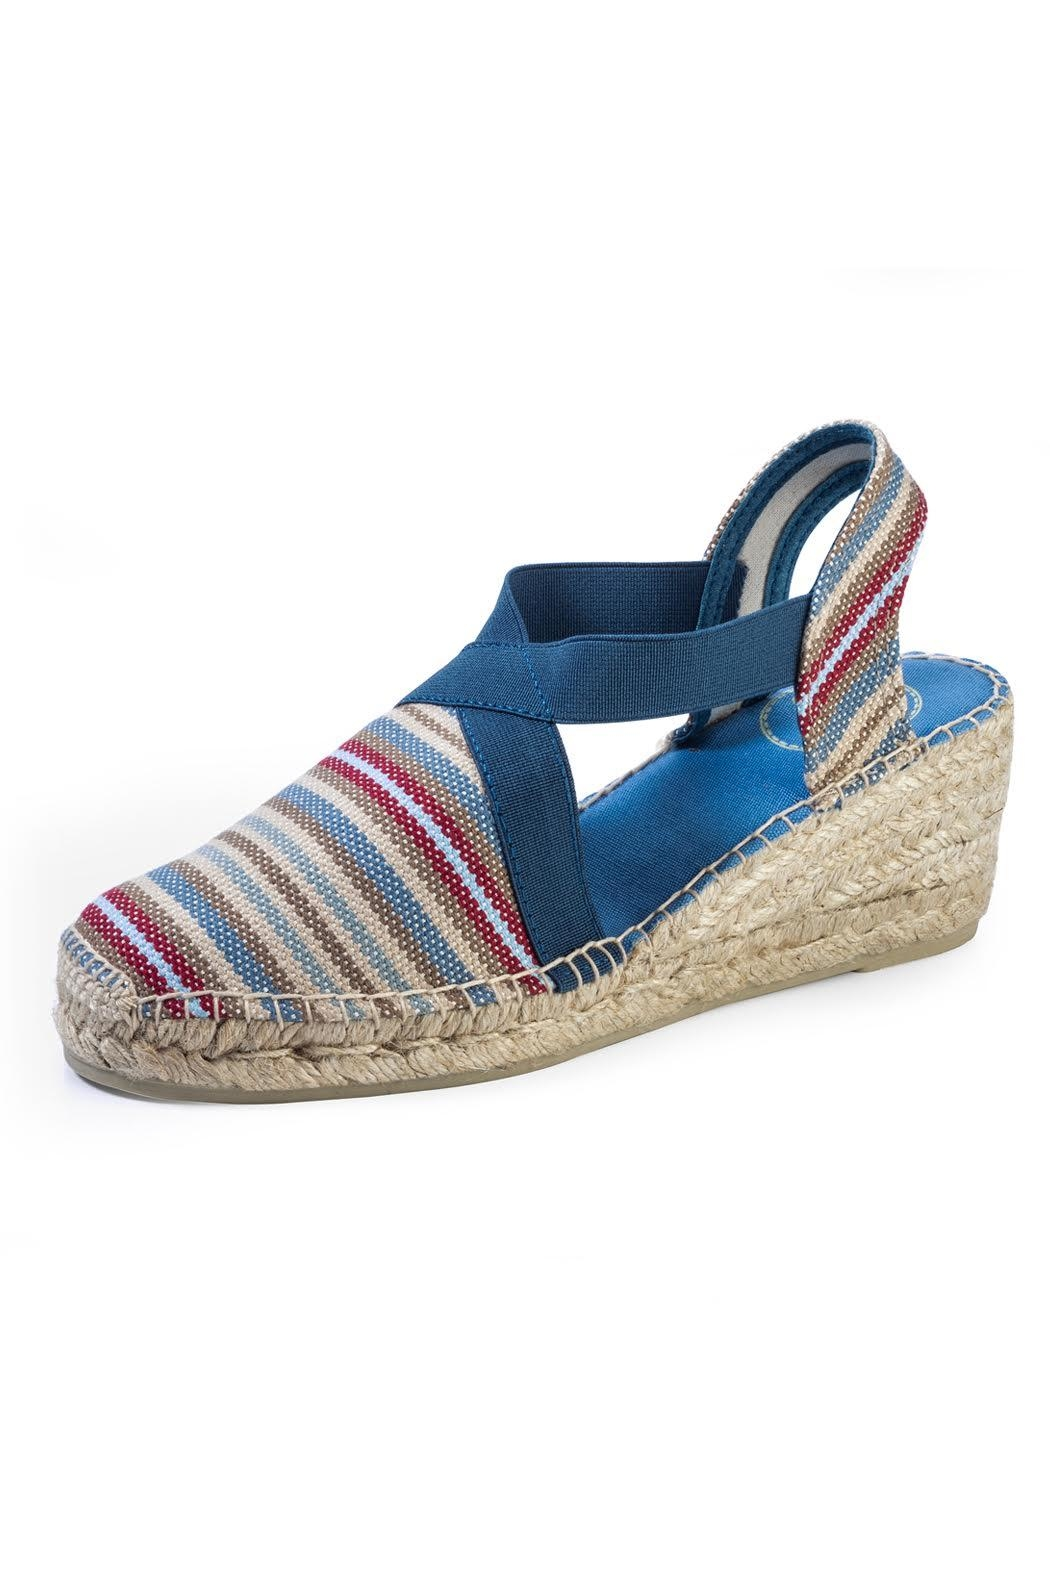 42b1ccb0c10 Toni Pons Tarbes Blue Espadrille from Israel by BRONXY — Shoptiques